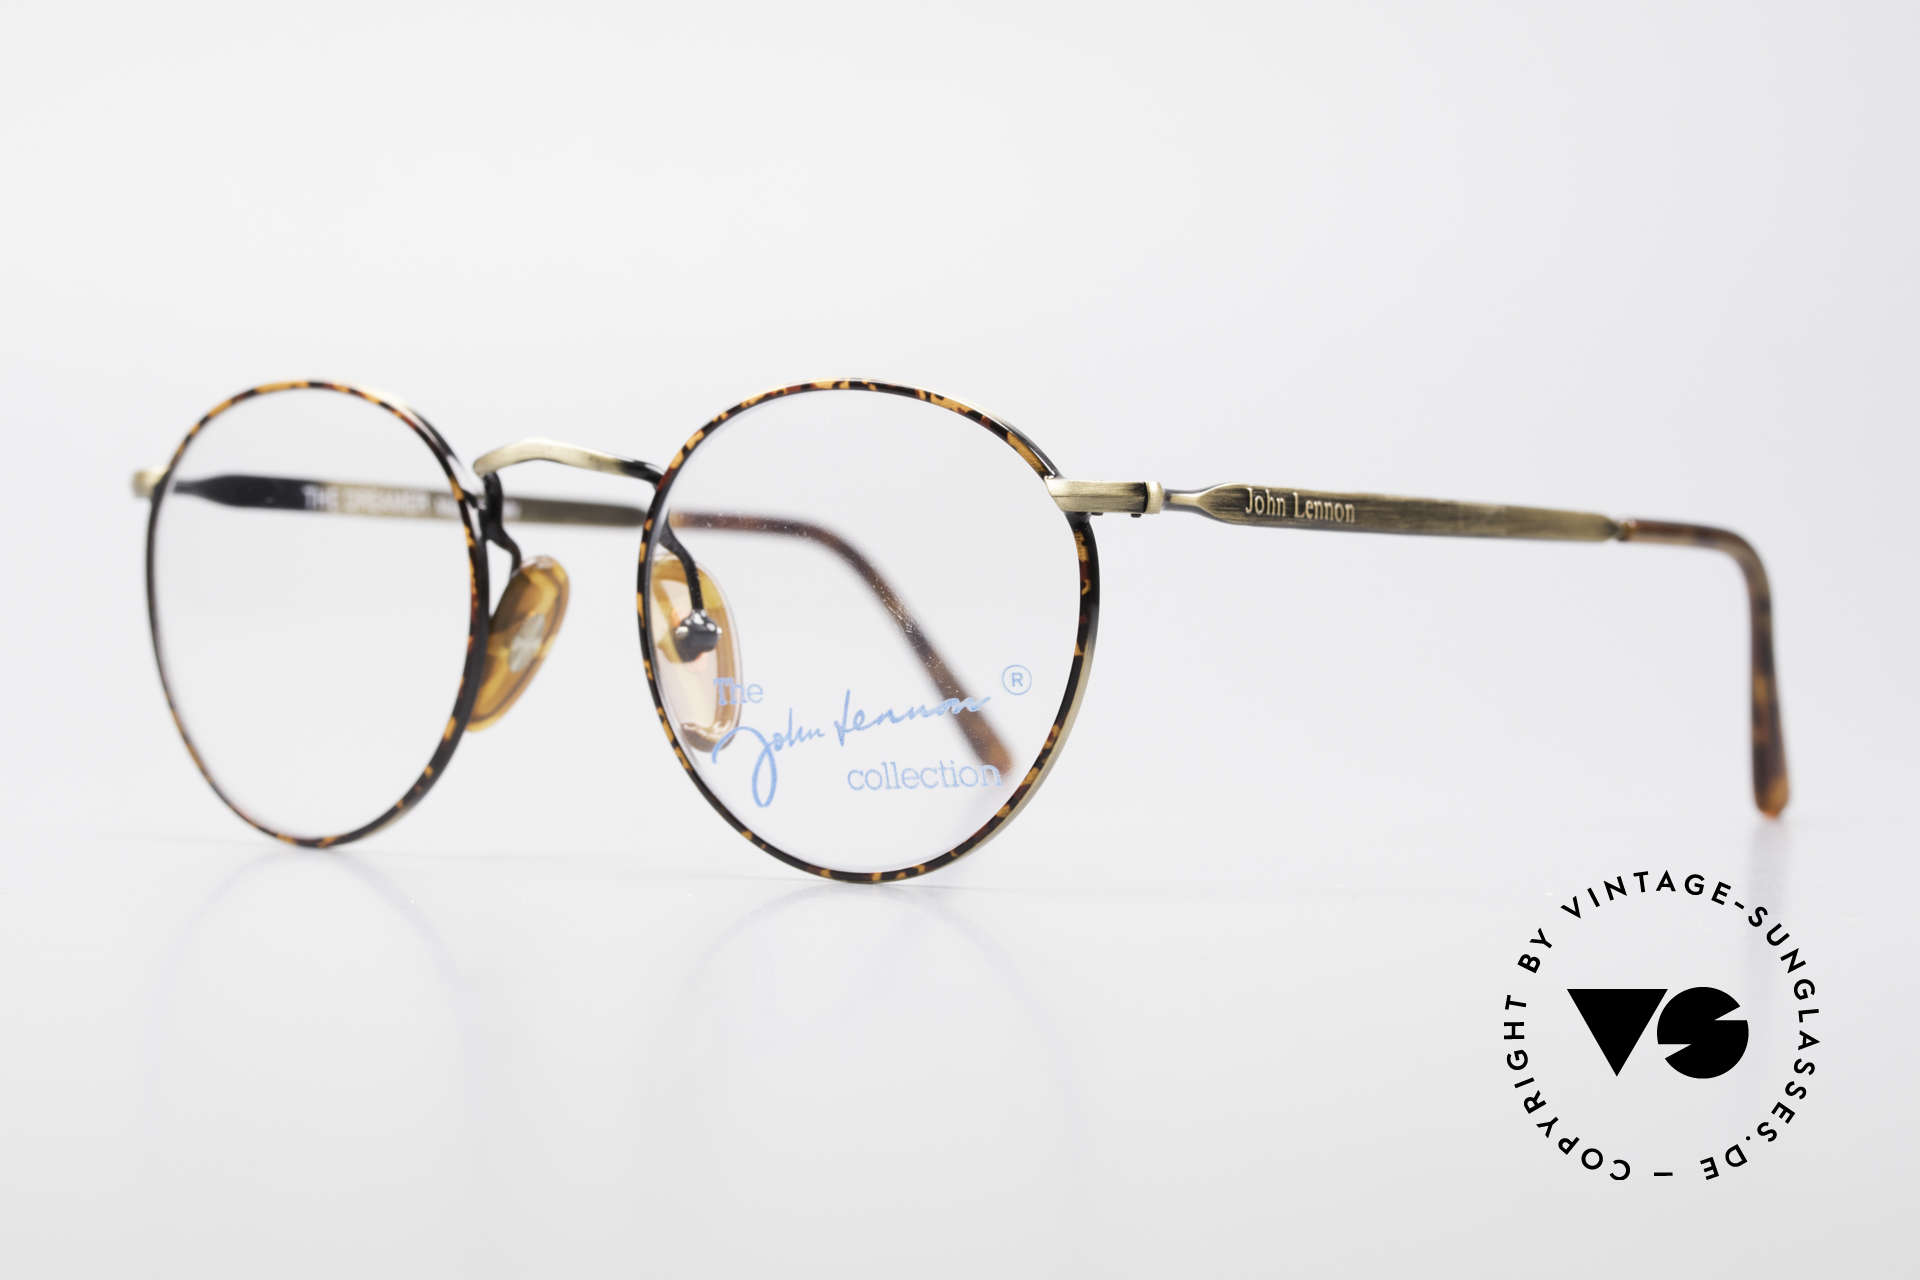 John Lennon - The Dreamer Very Small Vintage Glasses, all models named after famous J.Lennon / Beatles songs, Made for Men and Women